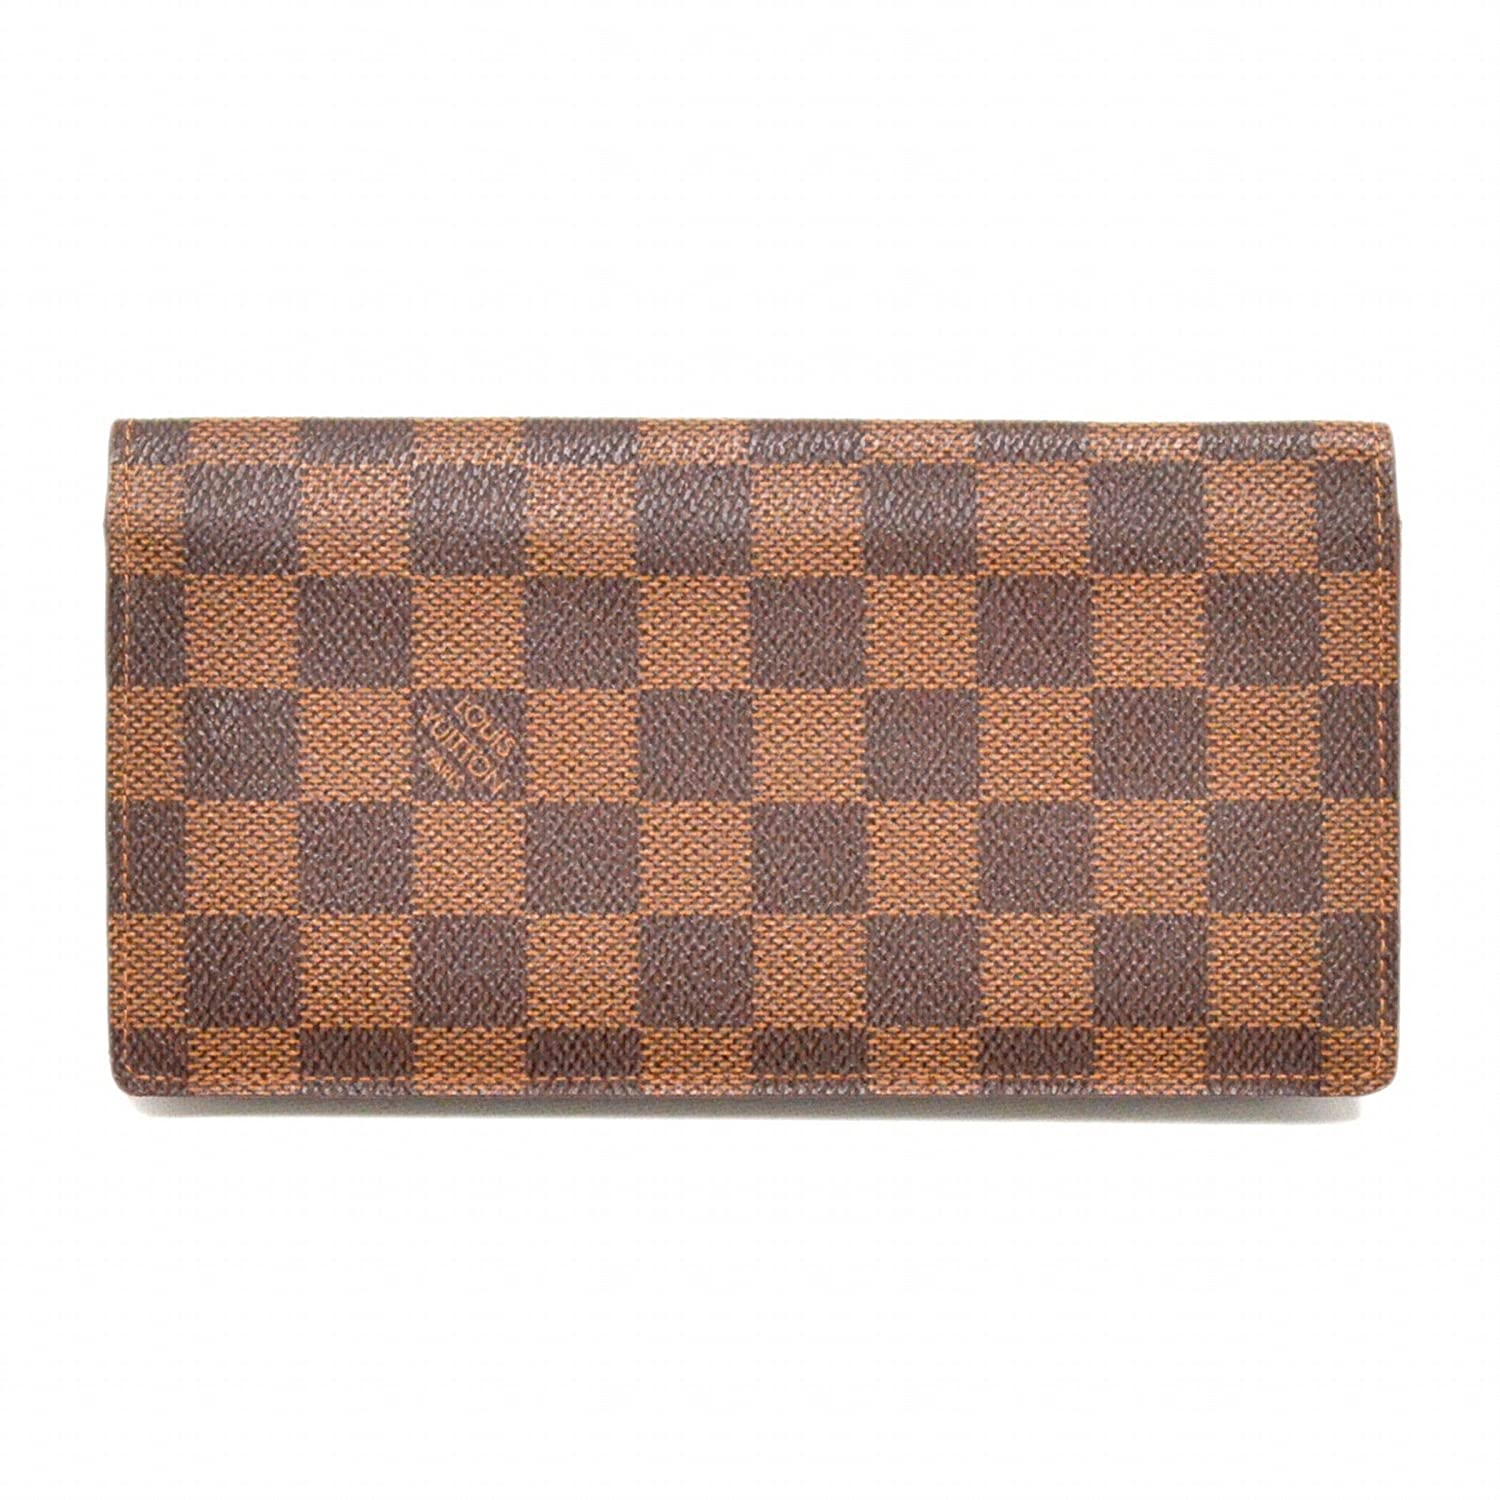 official photos 7841e 84537 ダミエ ブラザ ポルトフォイユ VUITTON LOUIS ルイヴィトン ...